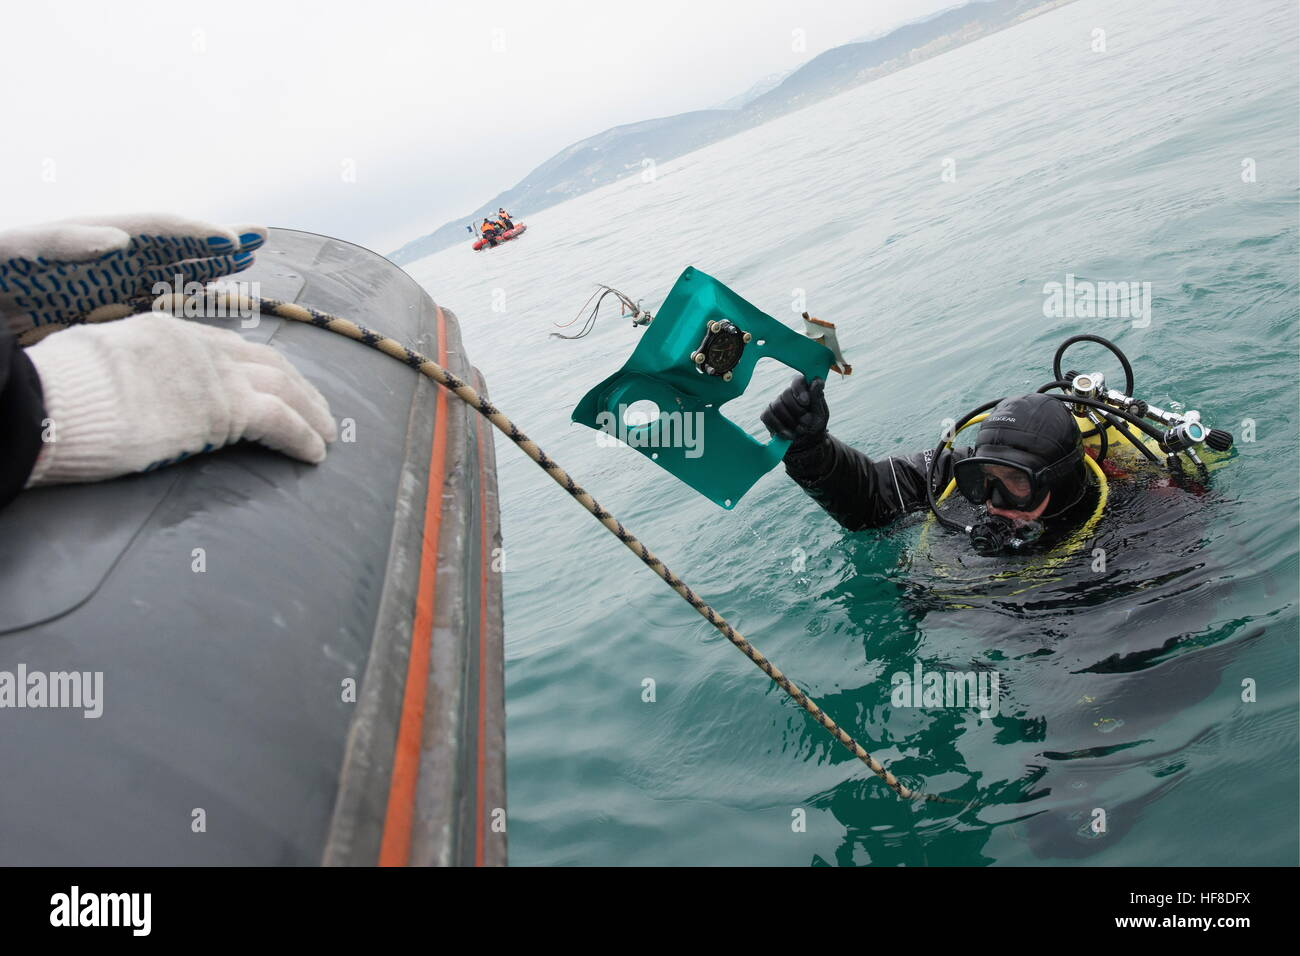 SOCHI, RUSSIA - DECEMBER 28, 2016: A diver during a search and rescue operation at the crash site of a Russian Defence Stock Photo